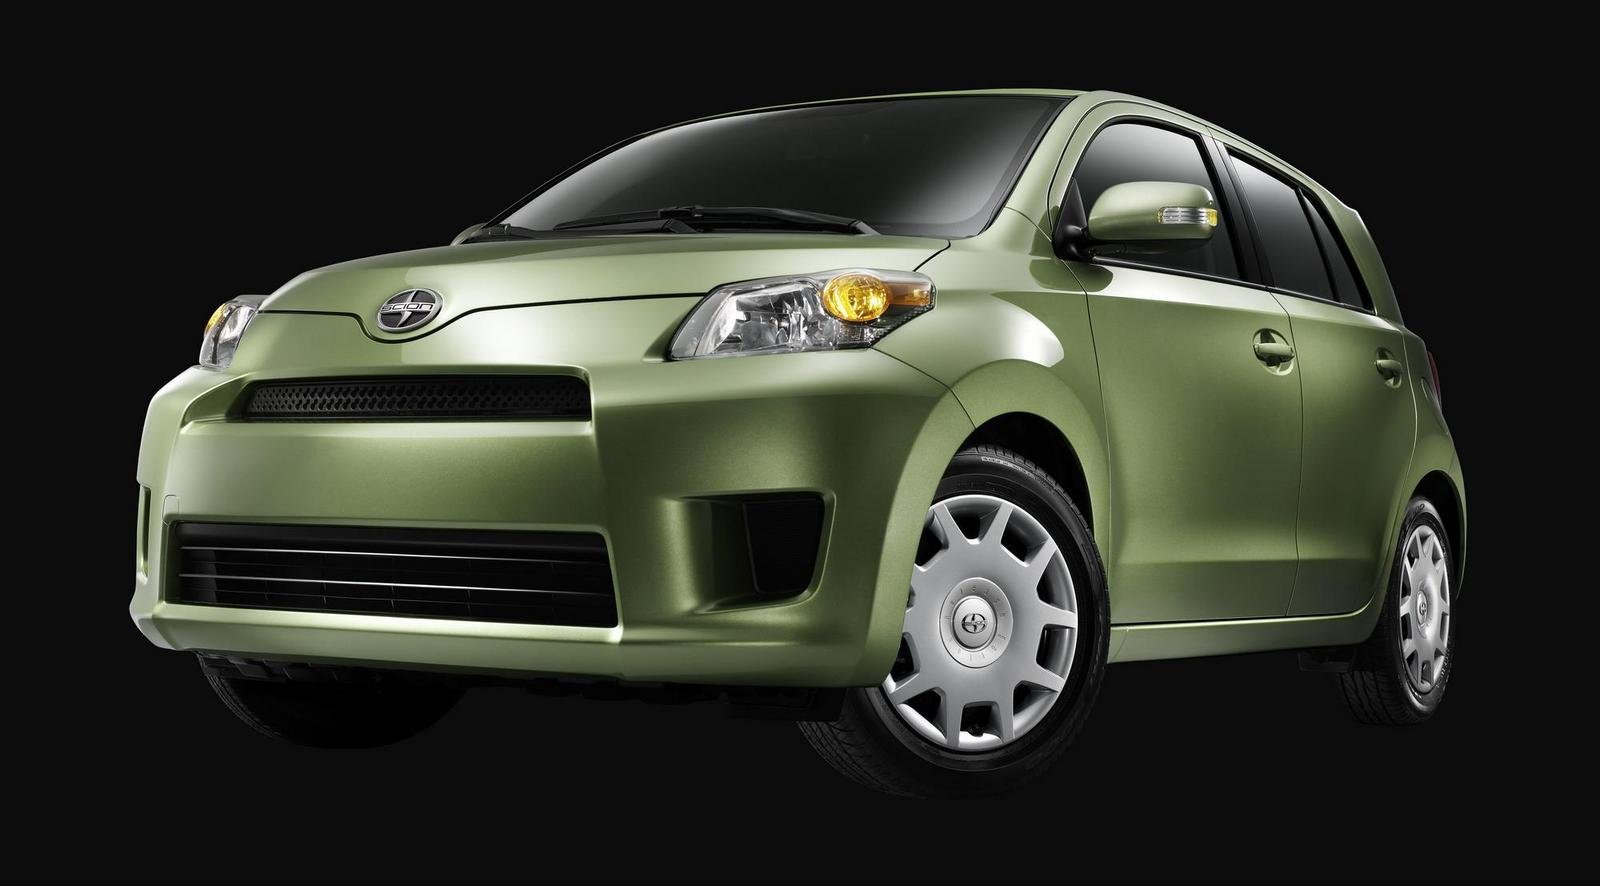 Model Cars For Sale >> 2009 Scion XD Release Series 2.0 Review - Top Speed